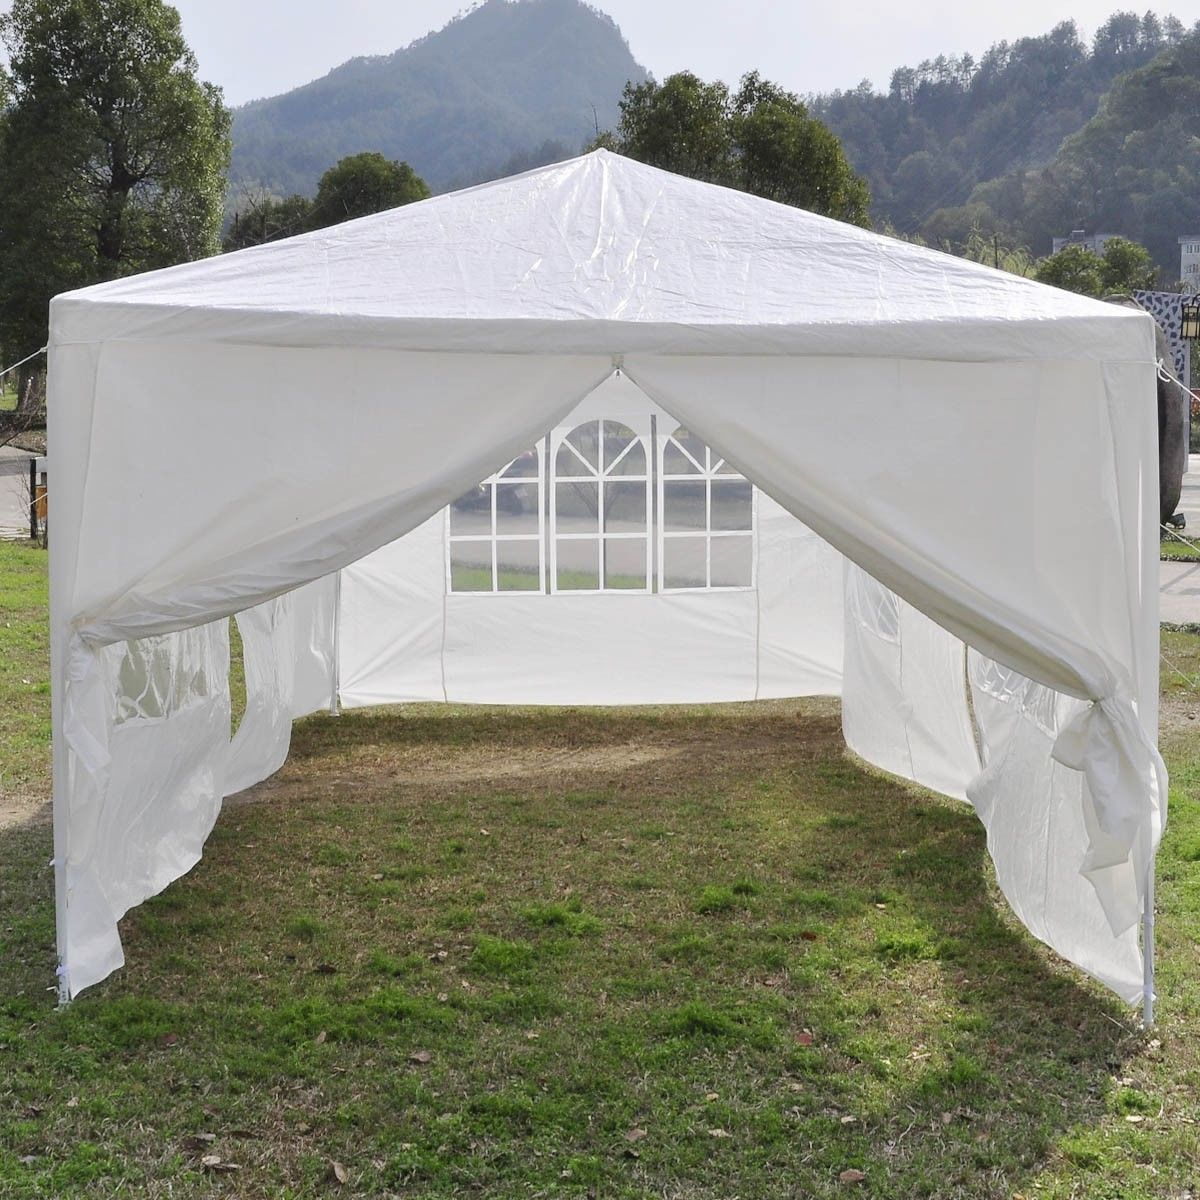 & 10 x 20 White Party Tent Canopy Gazebo